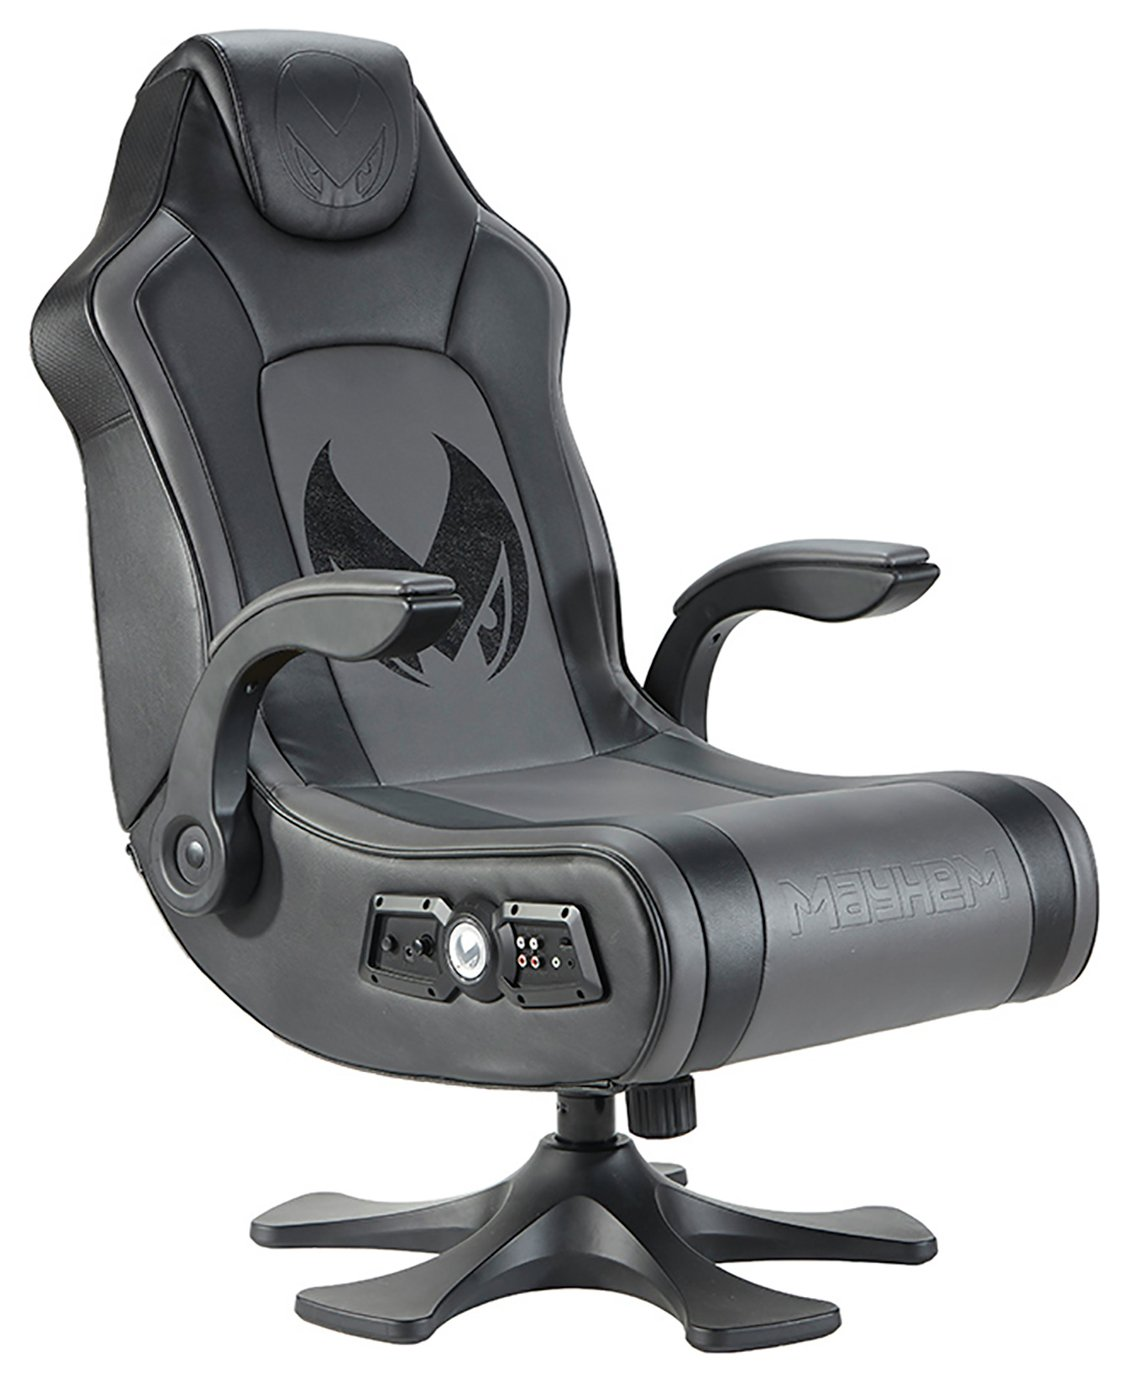 wireless gaming chair  sc 1 st  Argos & Results for wireless gaming chair